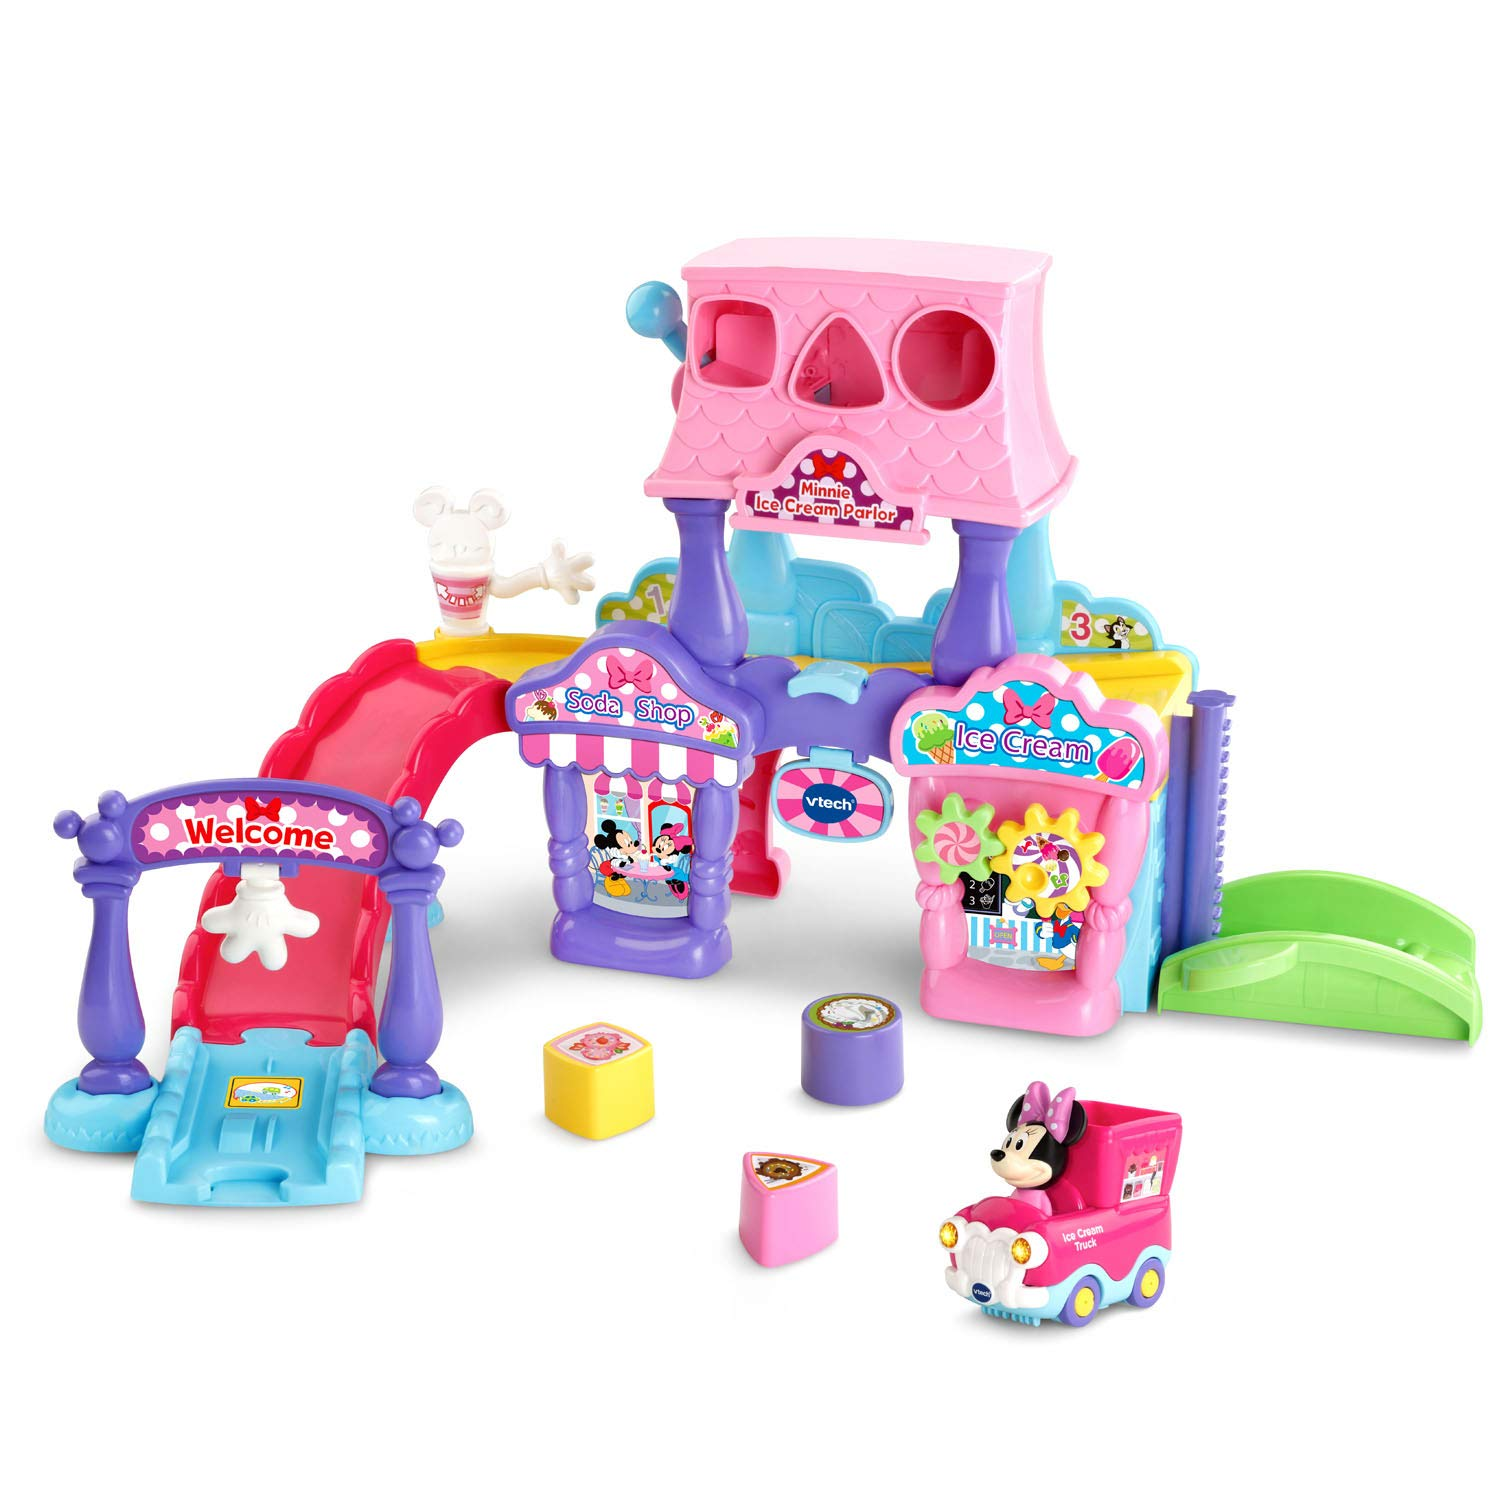 VTech Go! Go! Smart Wheels Minnie Mouse Ice Cream Parlor